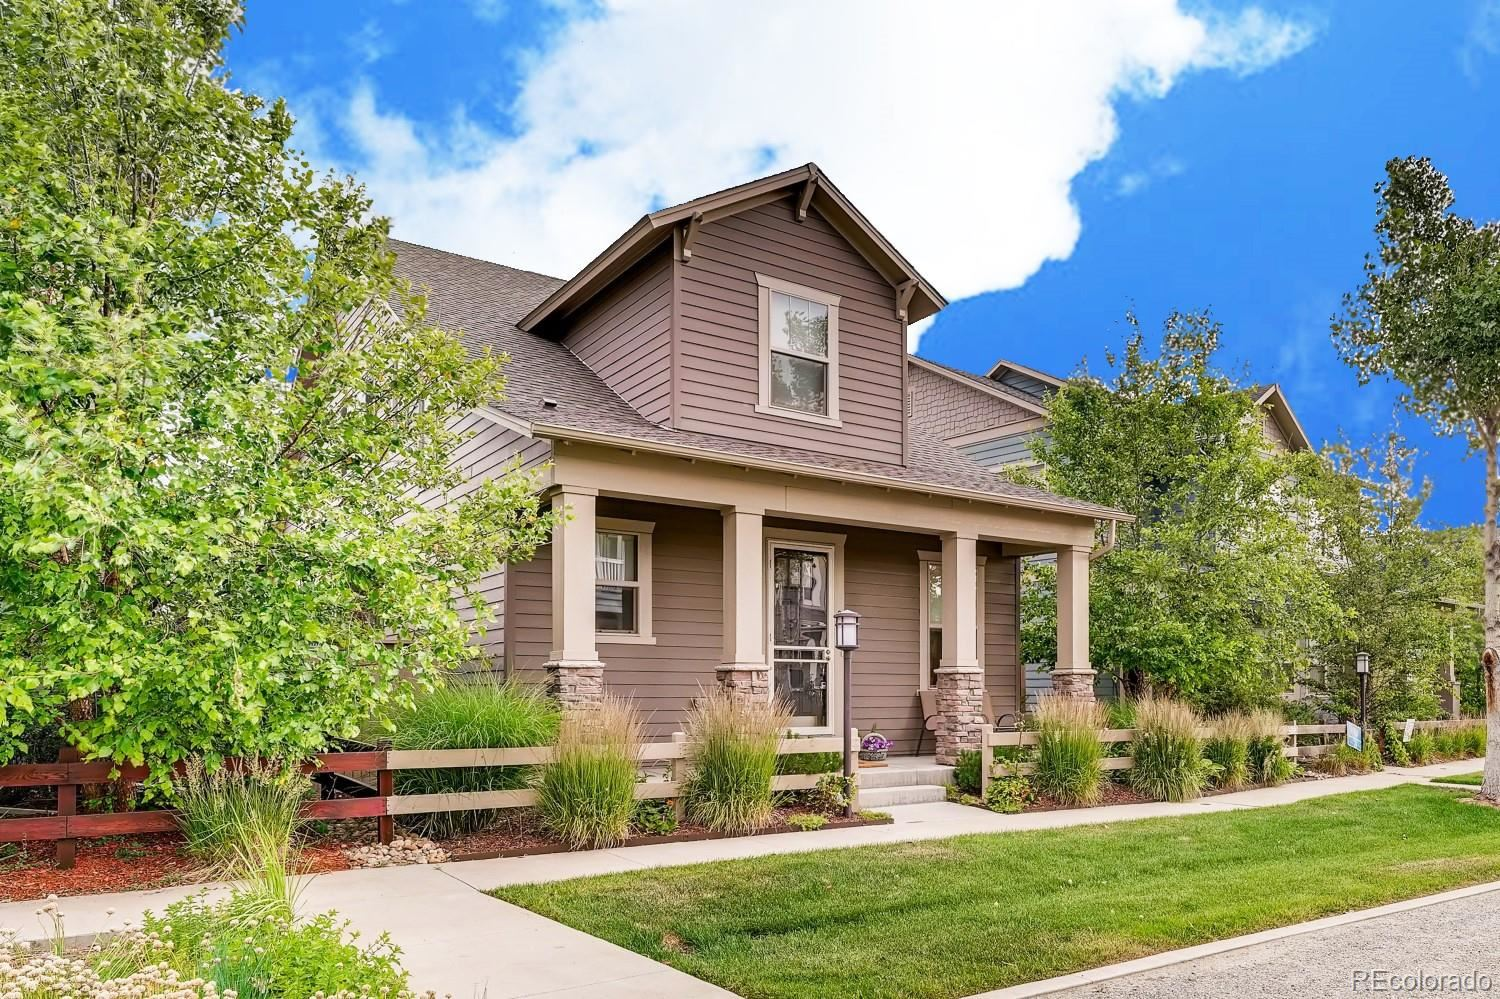 8080 E 50th Place E, Denver, CO 80238 - #: 7077990